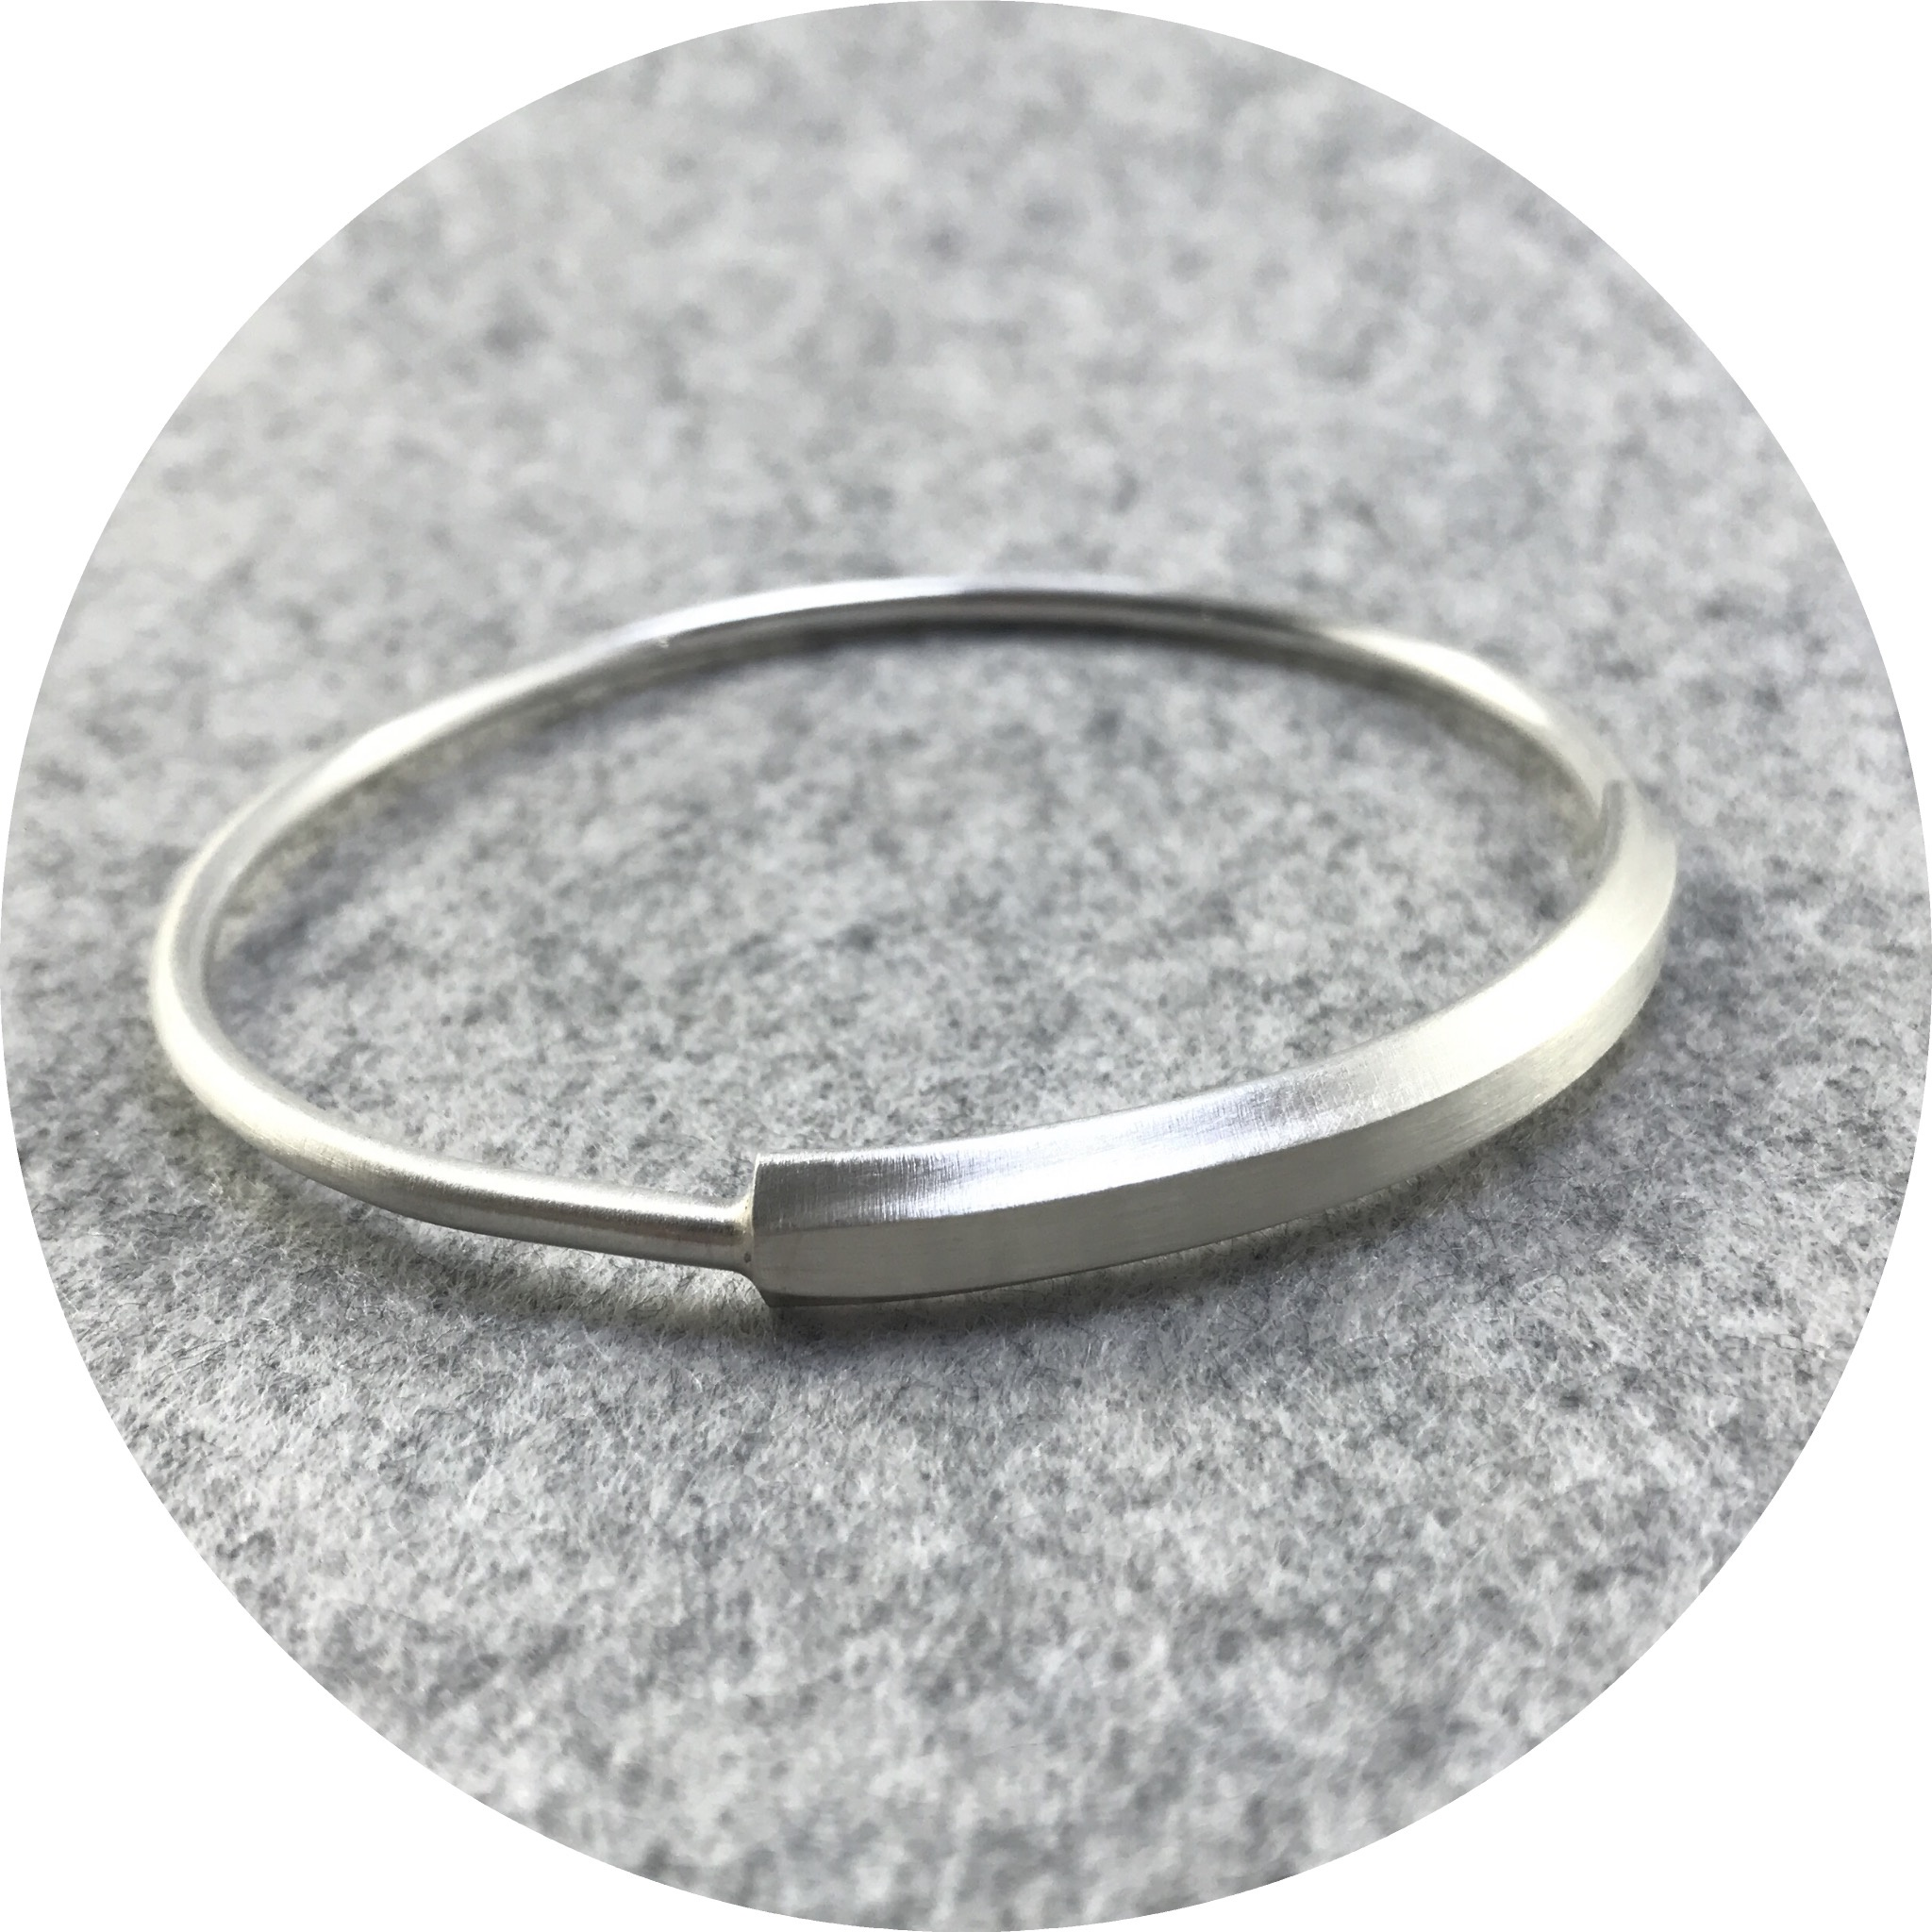 Rengin Guner- Sterling silver bangle with angled plate detail.